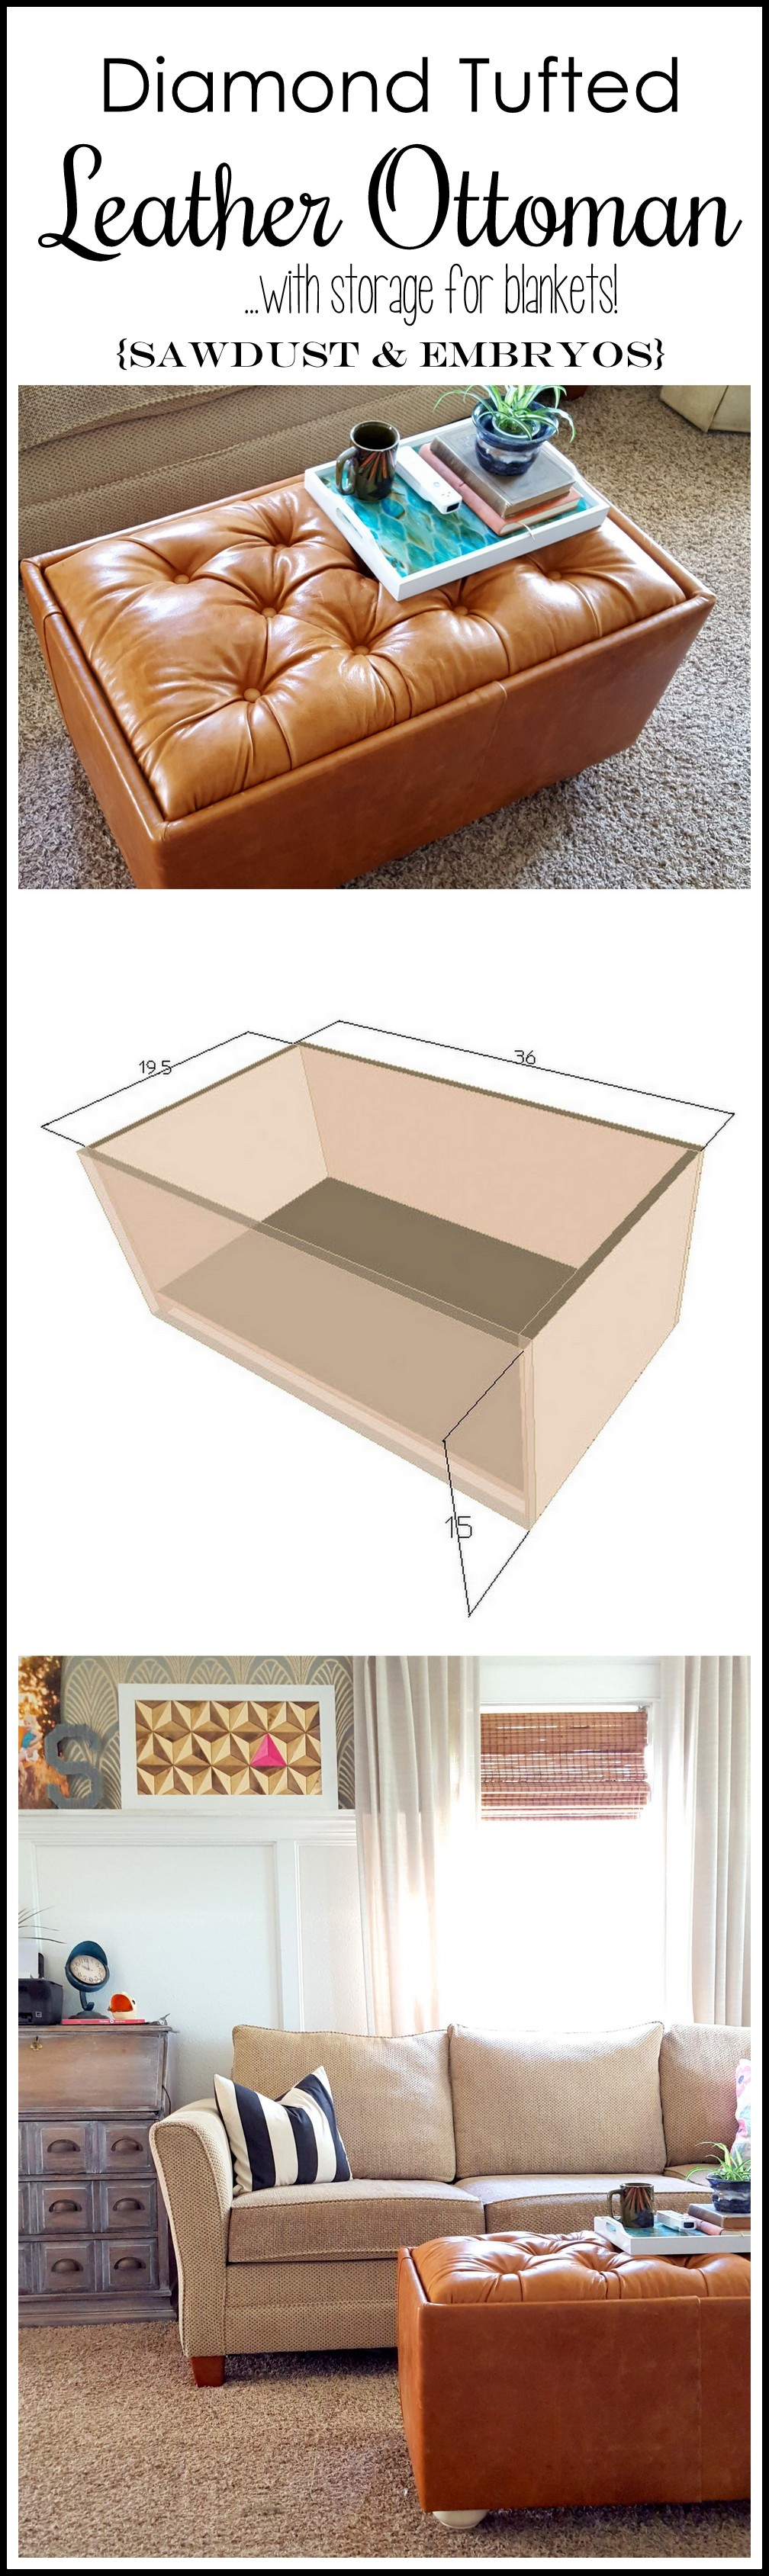 Diy leather upholstered storage ottoman reality daydream tutorial for making this leather diamond tufted ottoman complete with storage inside solutioingenieria Images